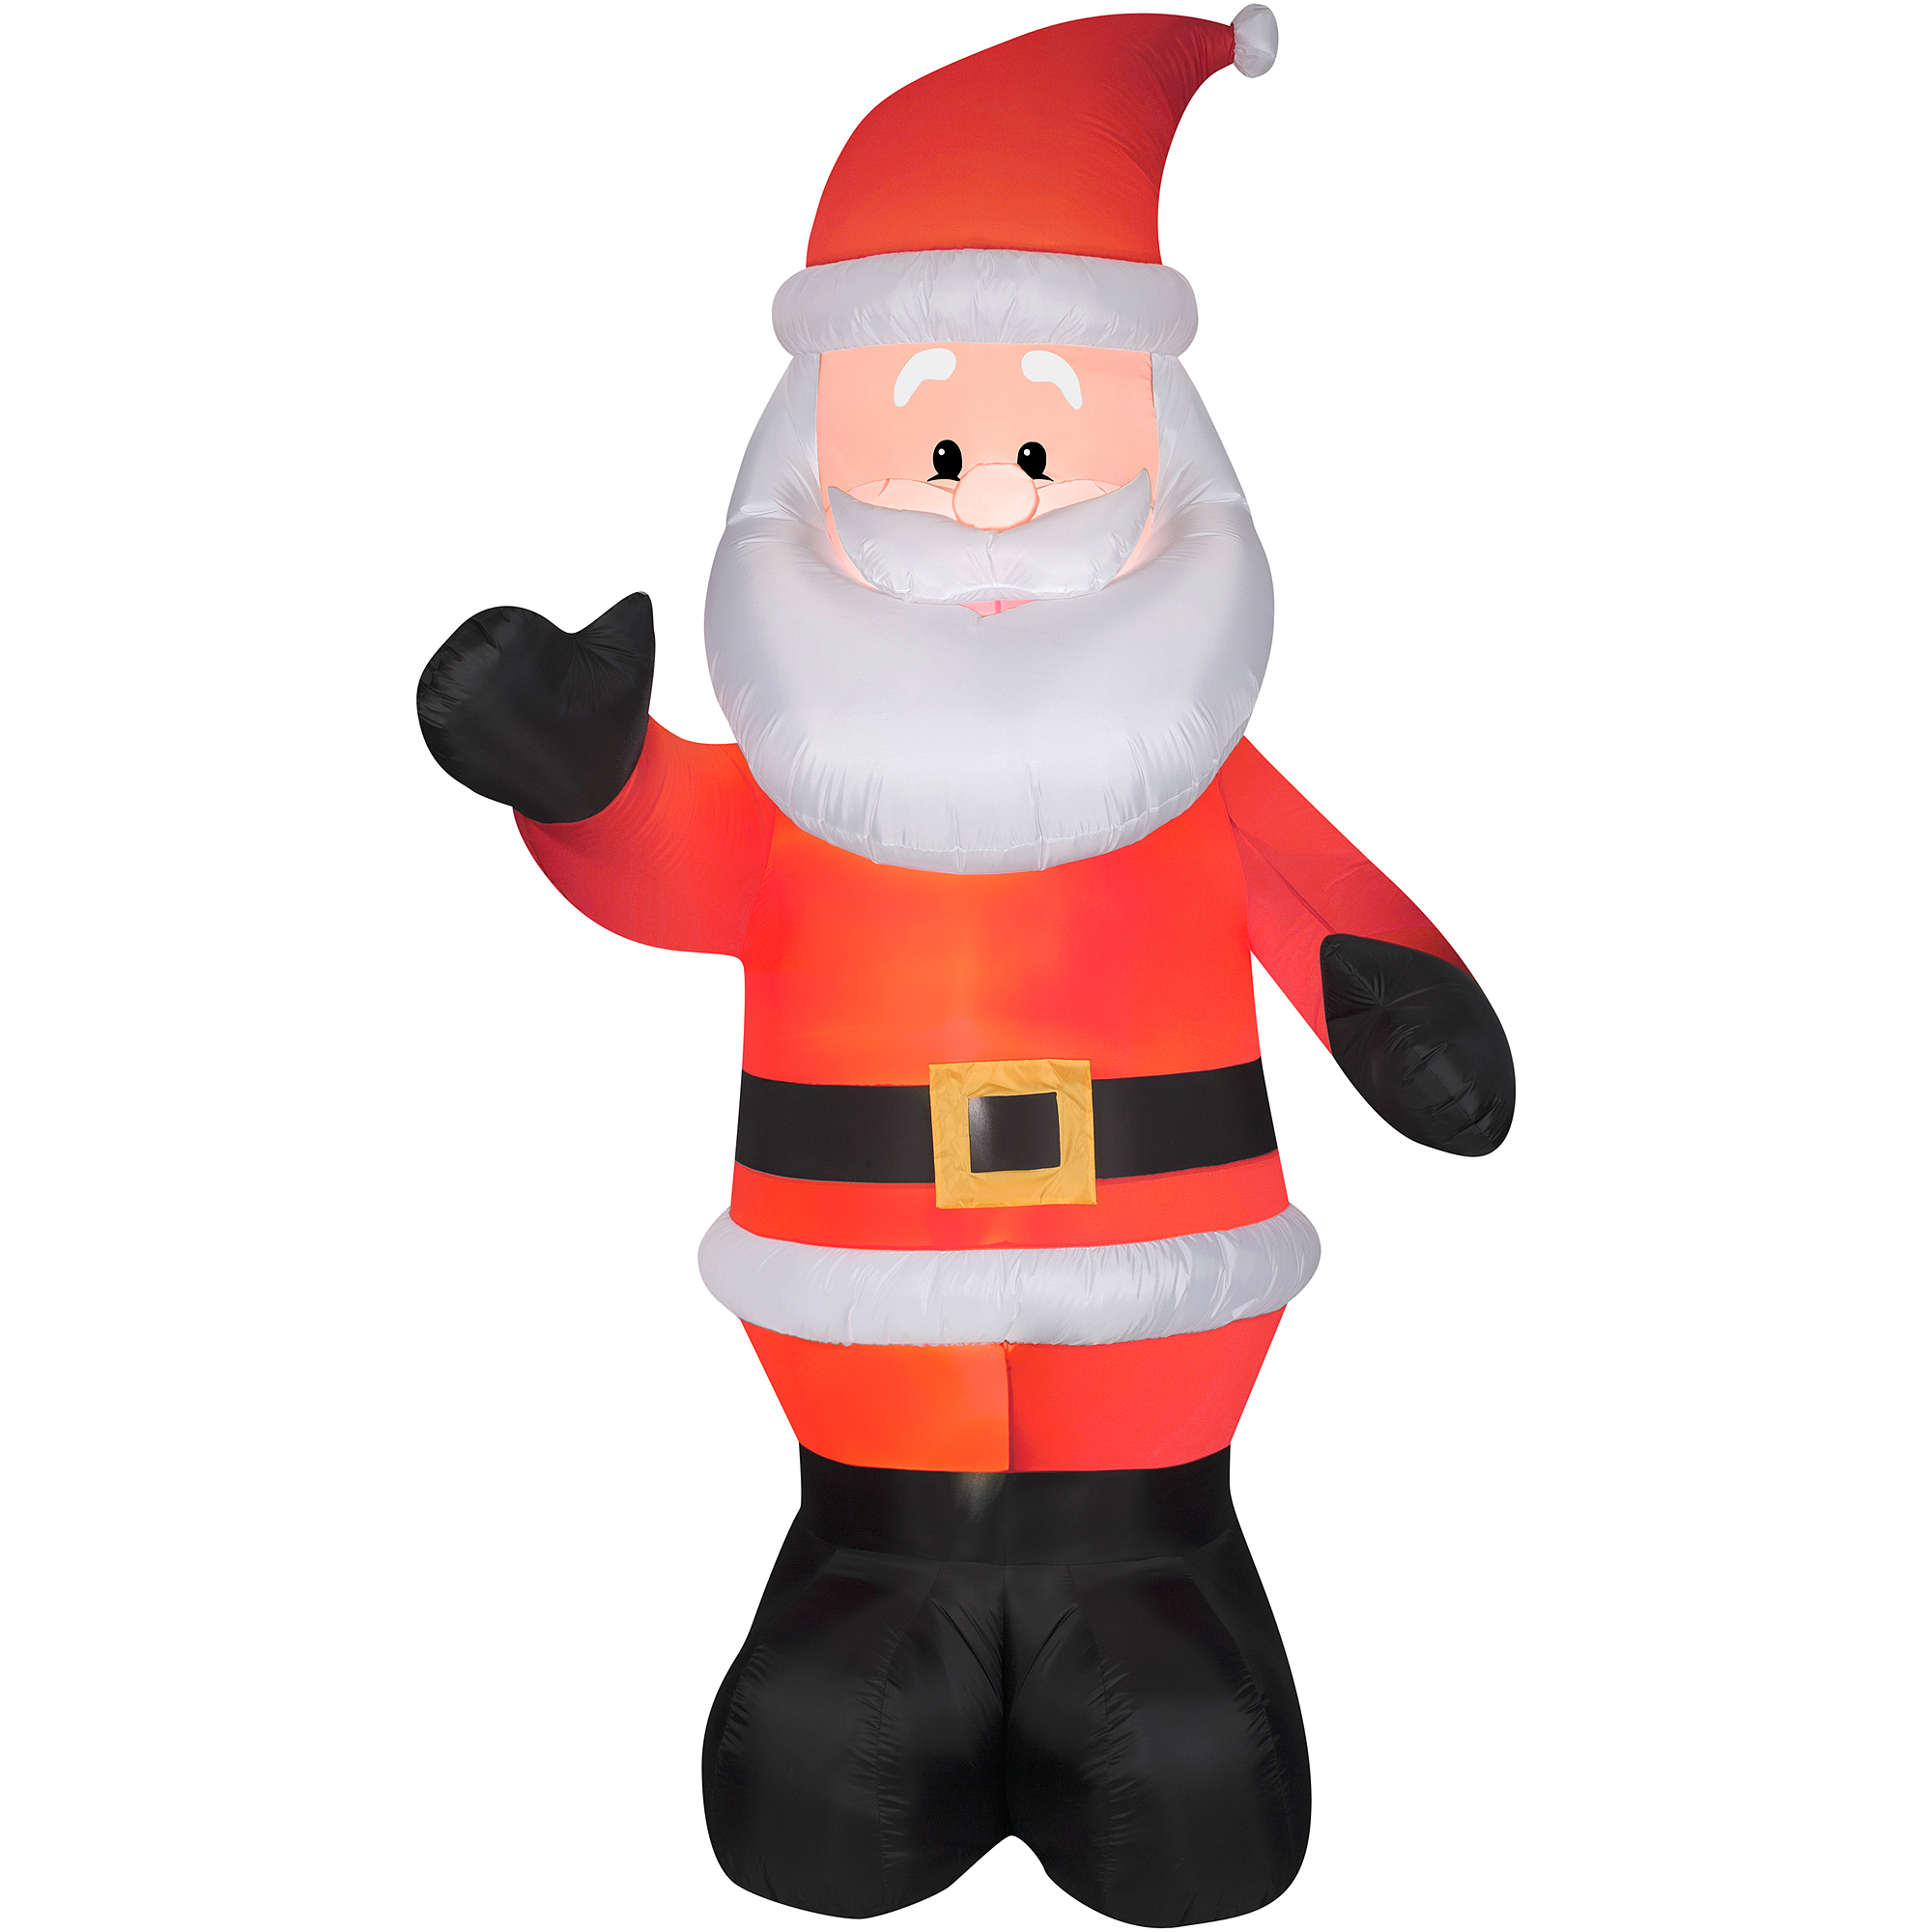 Foot lighted giant airblown inflatable santa claus